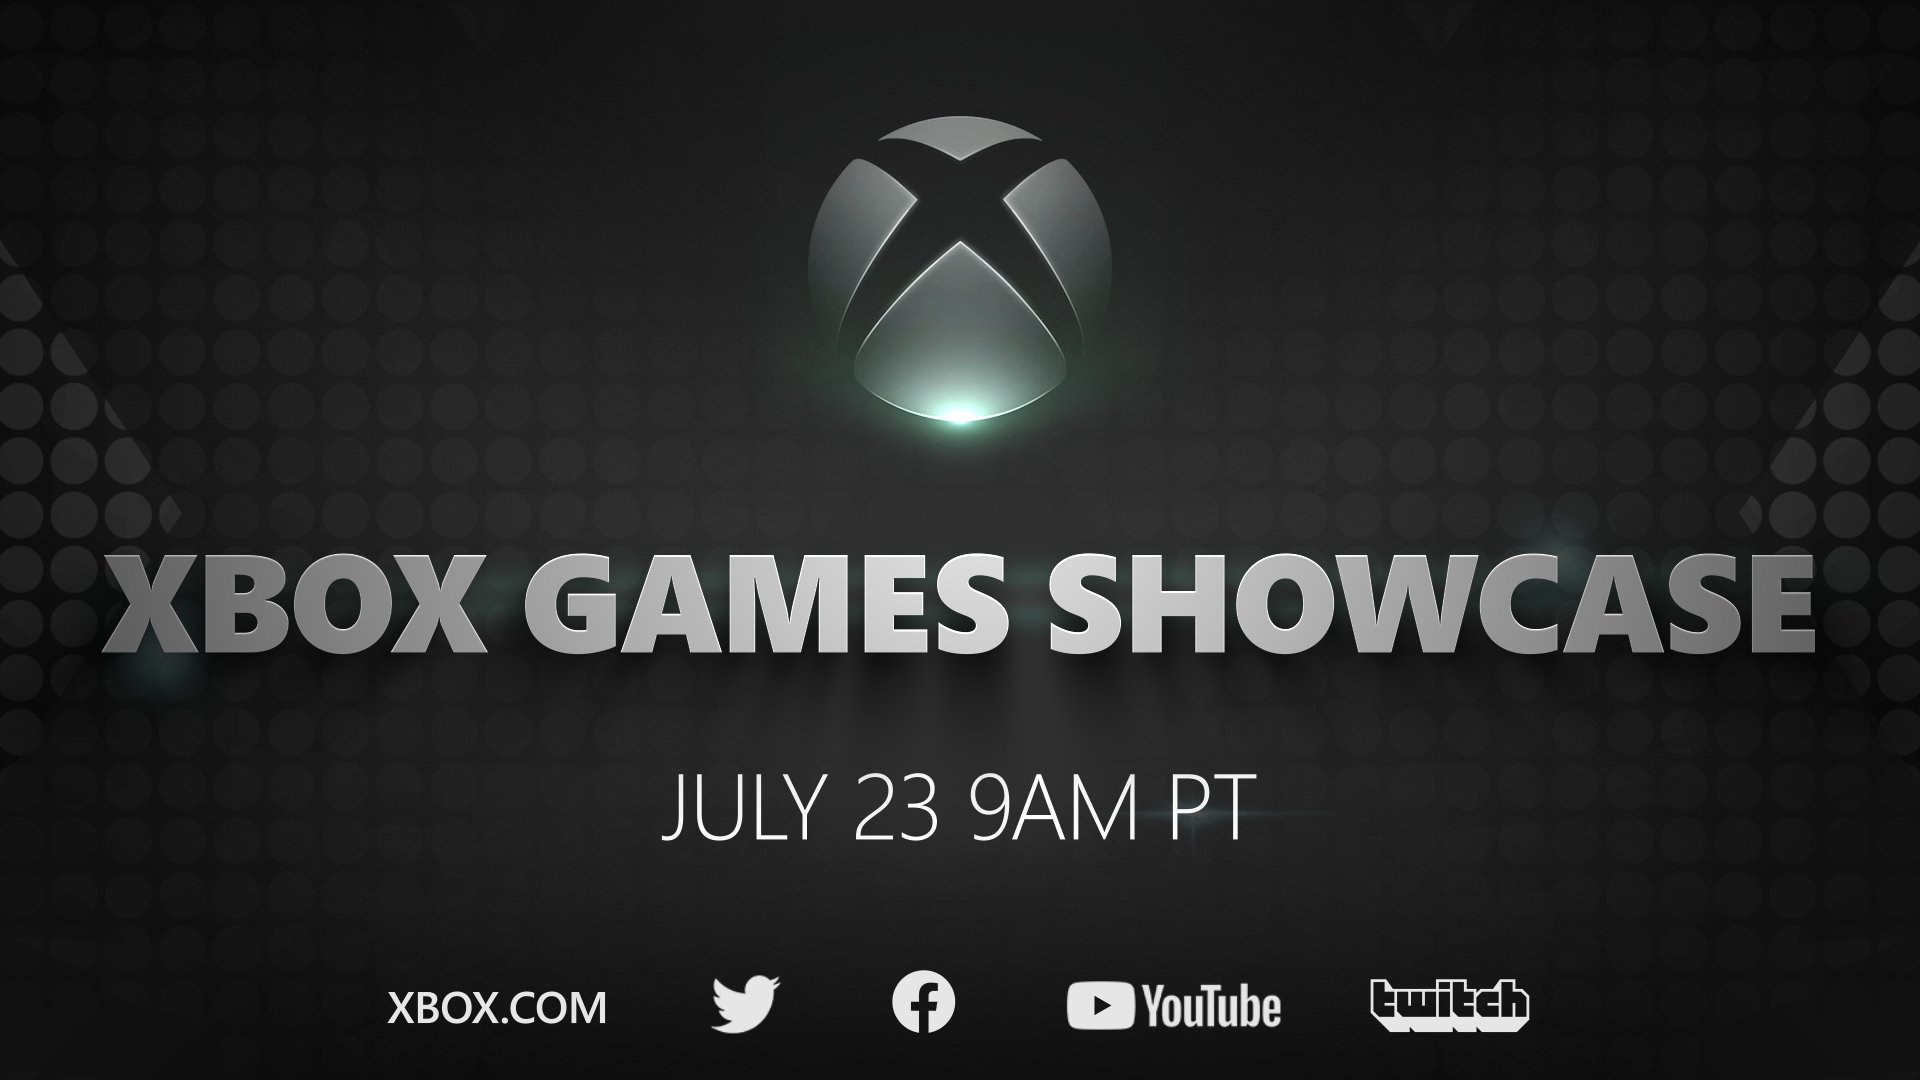 El Xbox Games Showcase será en pocas horas